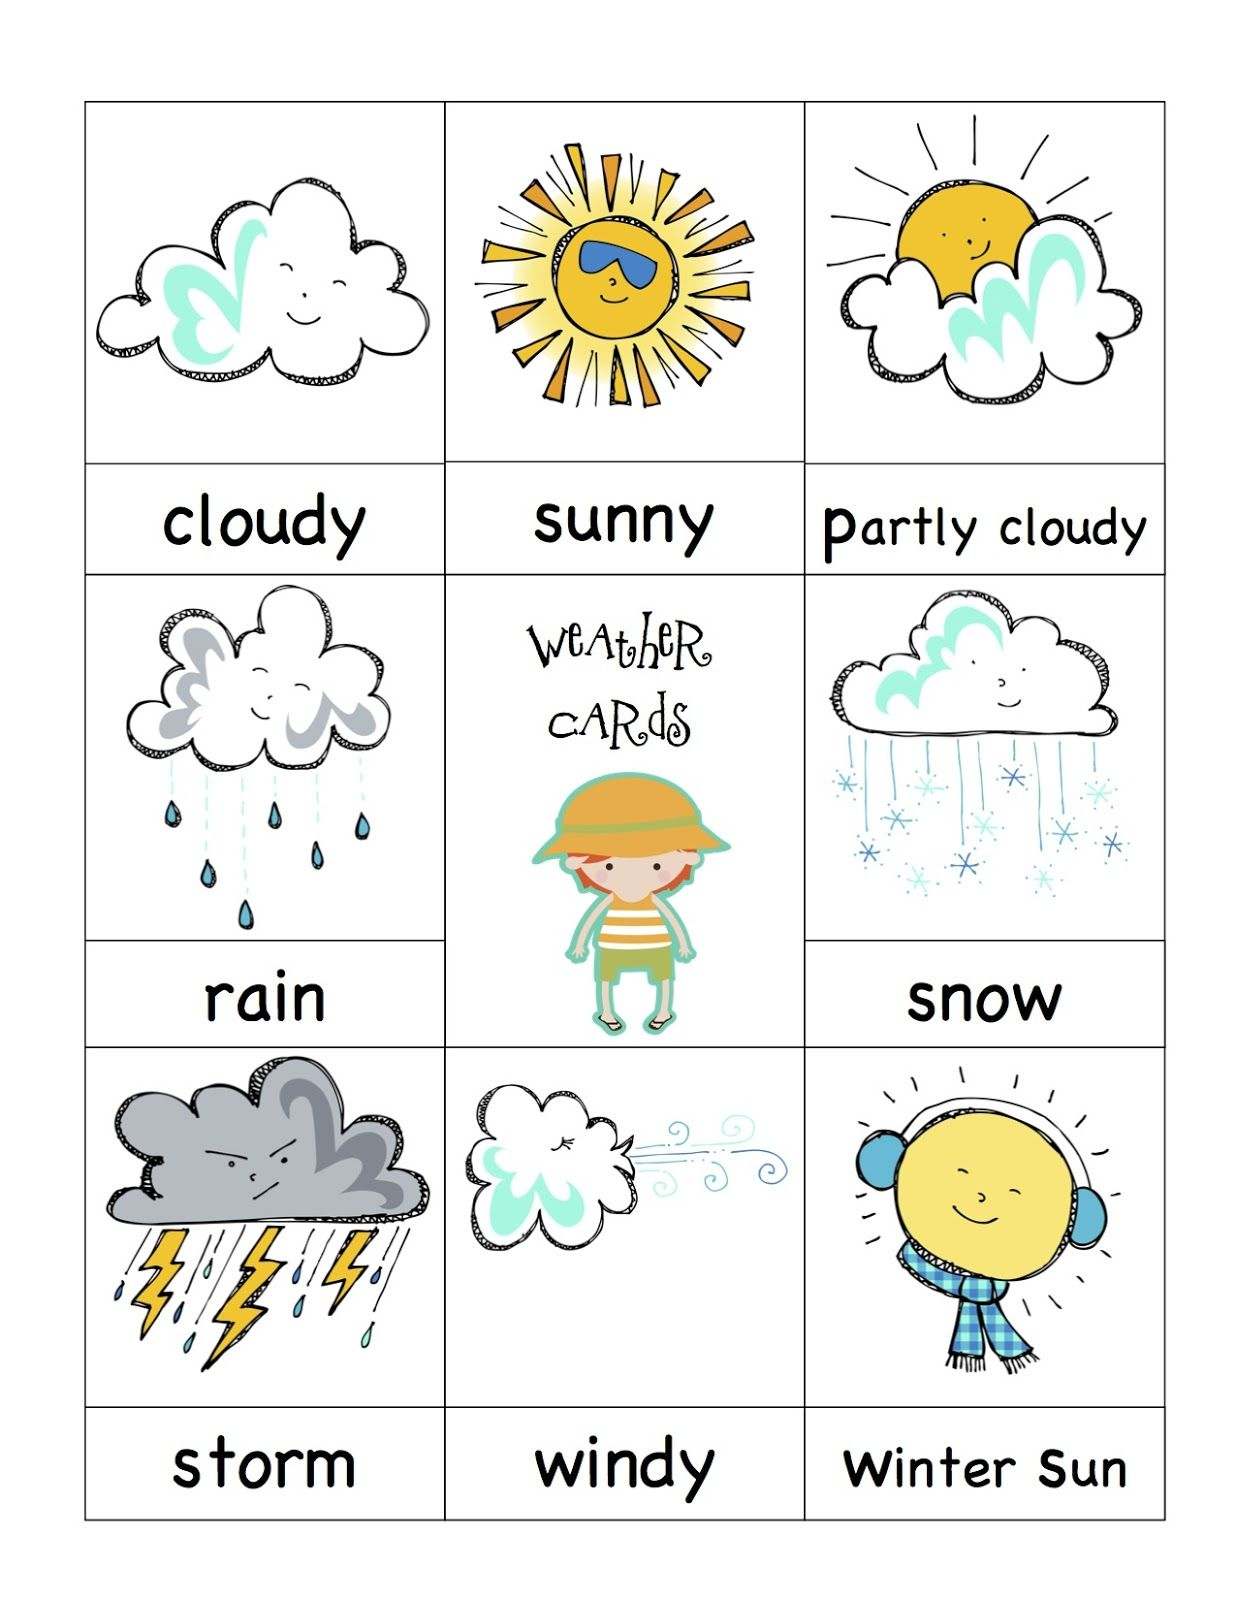 Weather Cards.